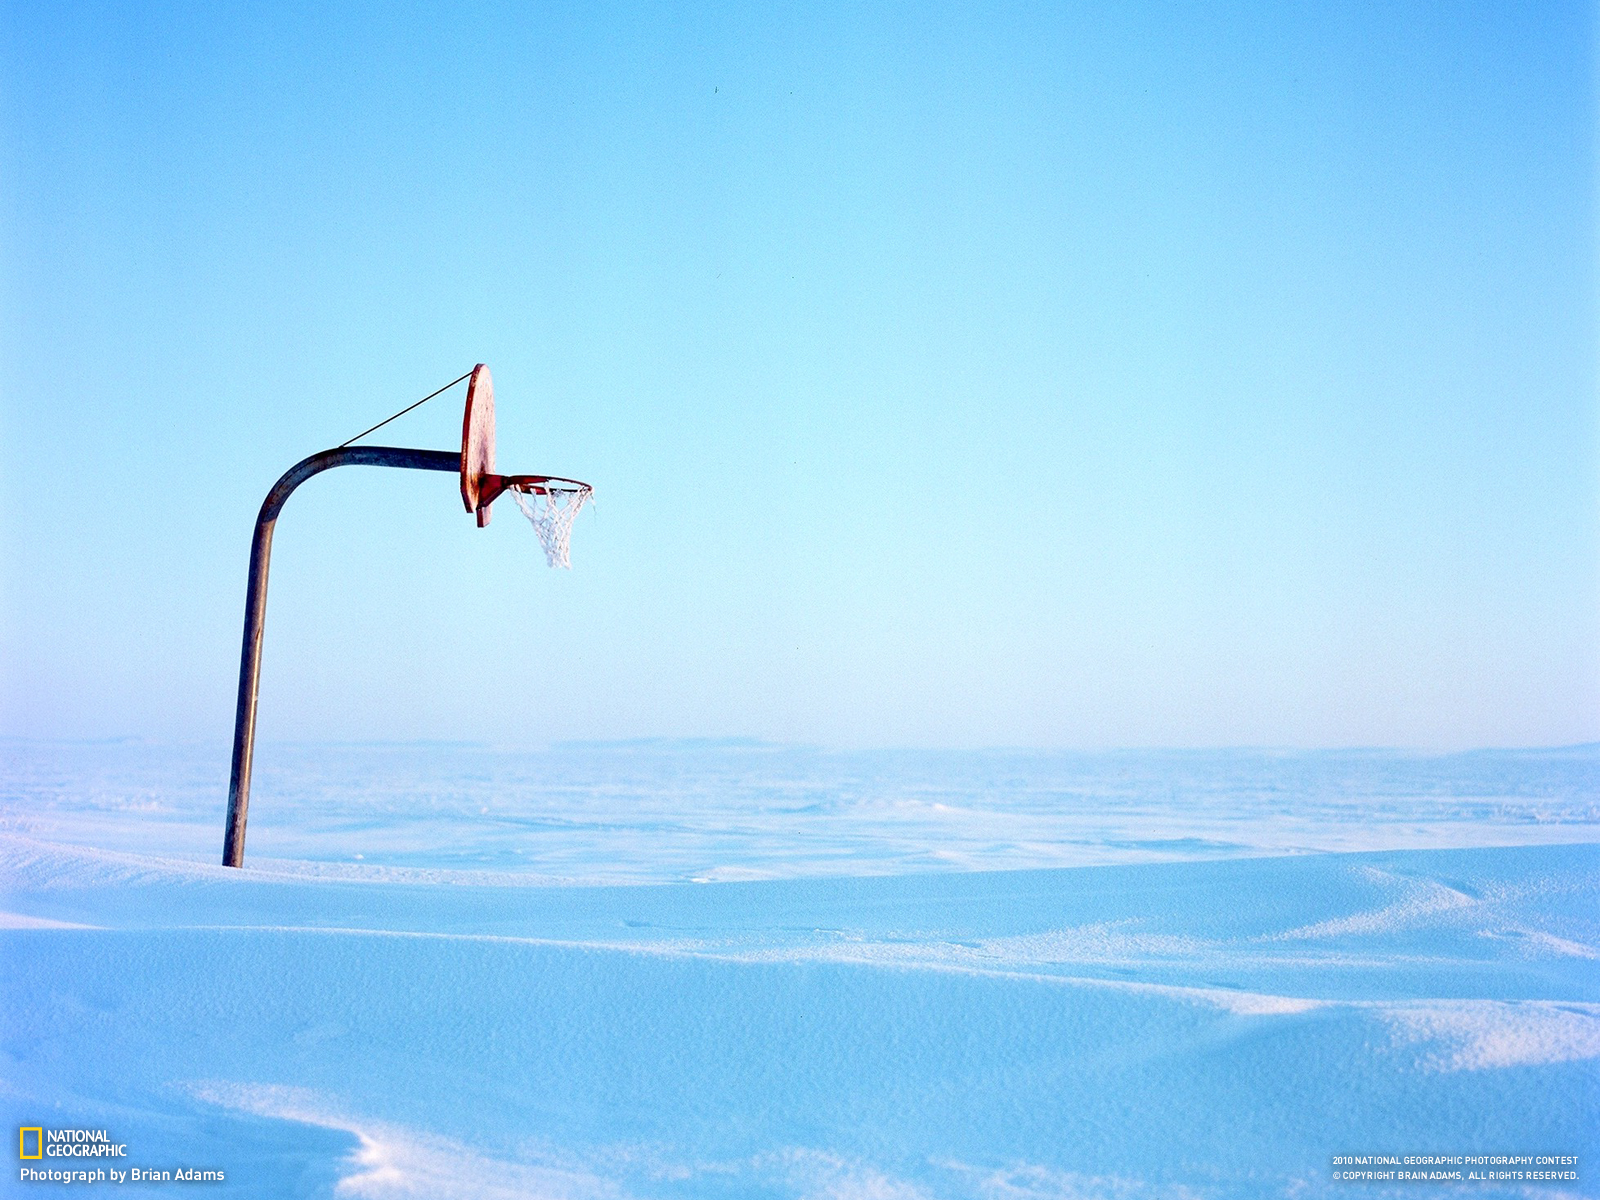 Wallpaper Basketball Court Covered With Snow Wallpaper